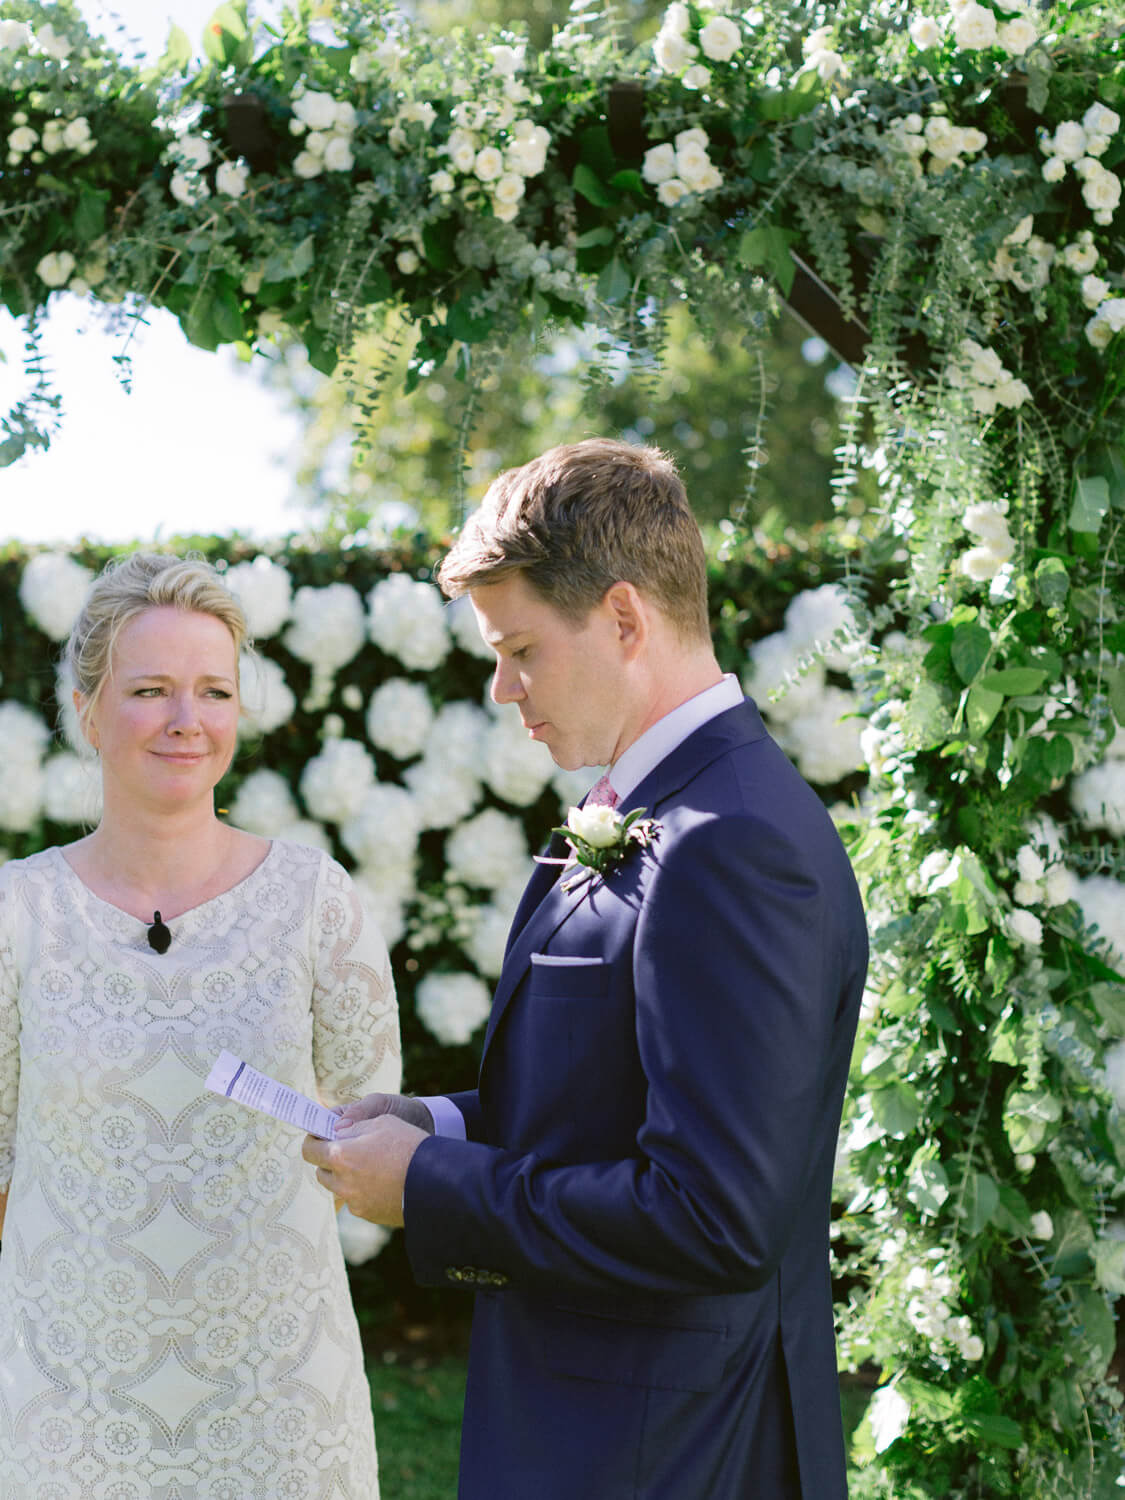 groom reading vows during wedding ceremony in Seteais Palace Sintra by Portugal Wedding Photographer